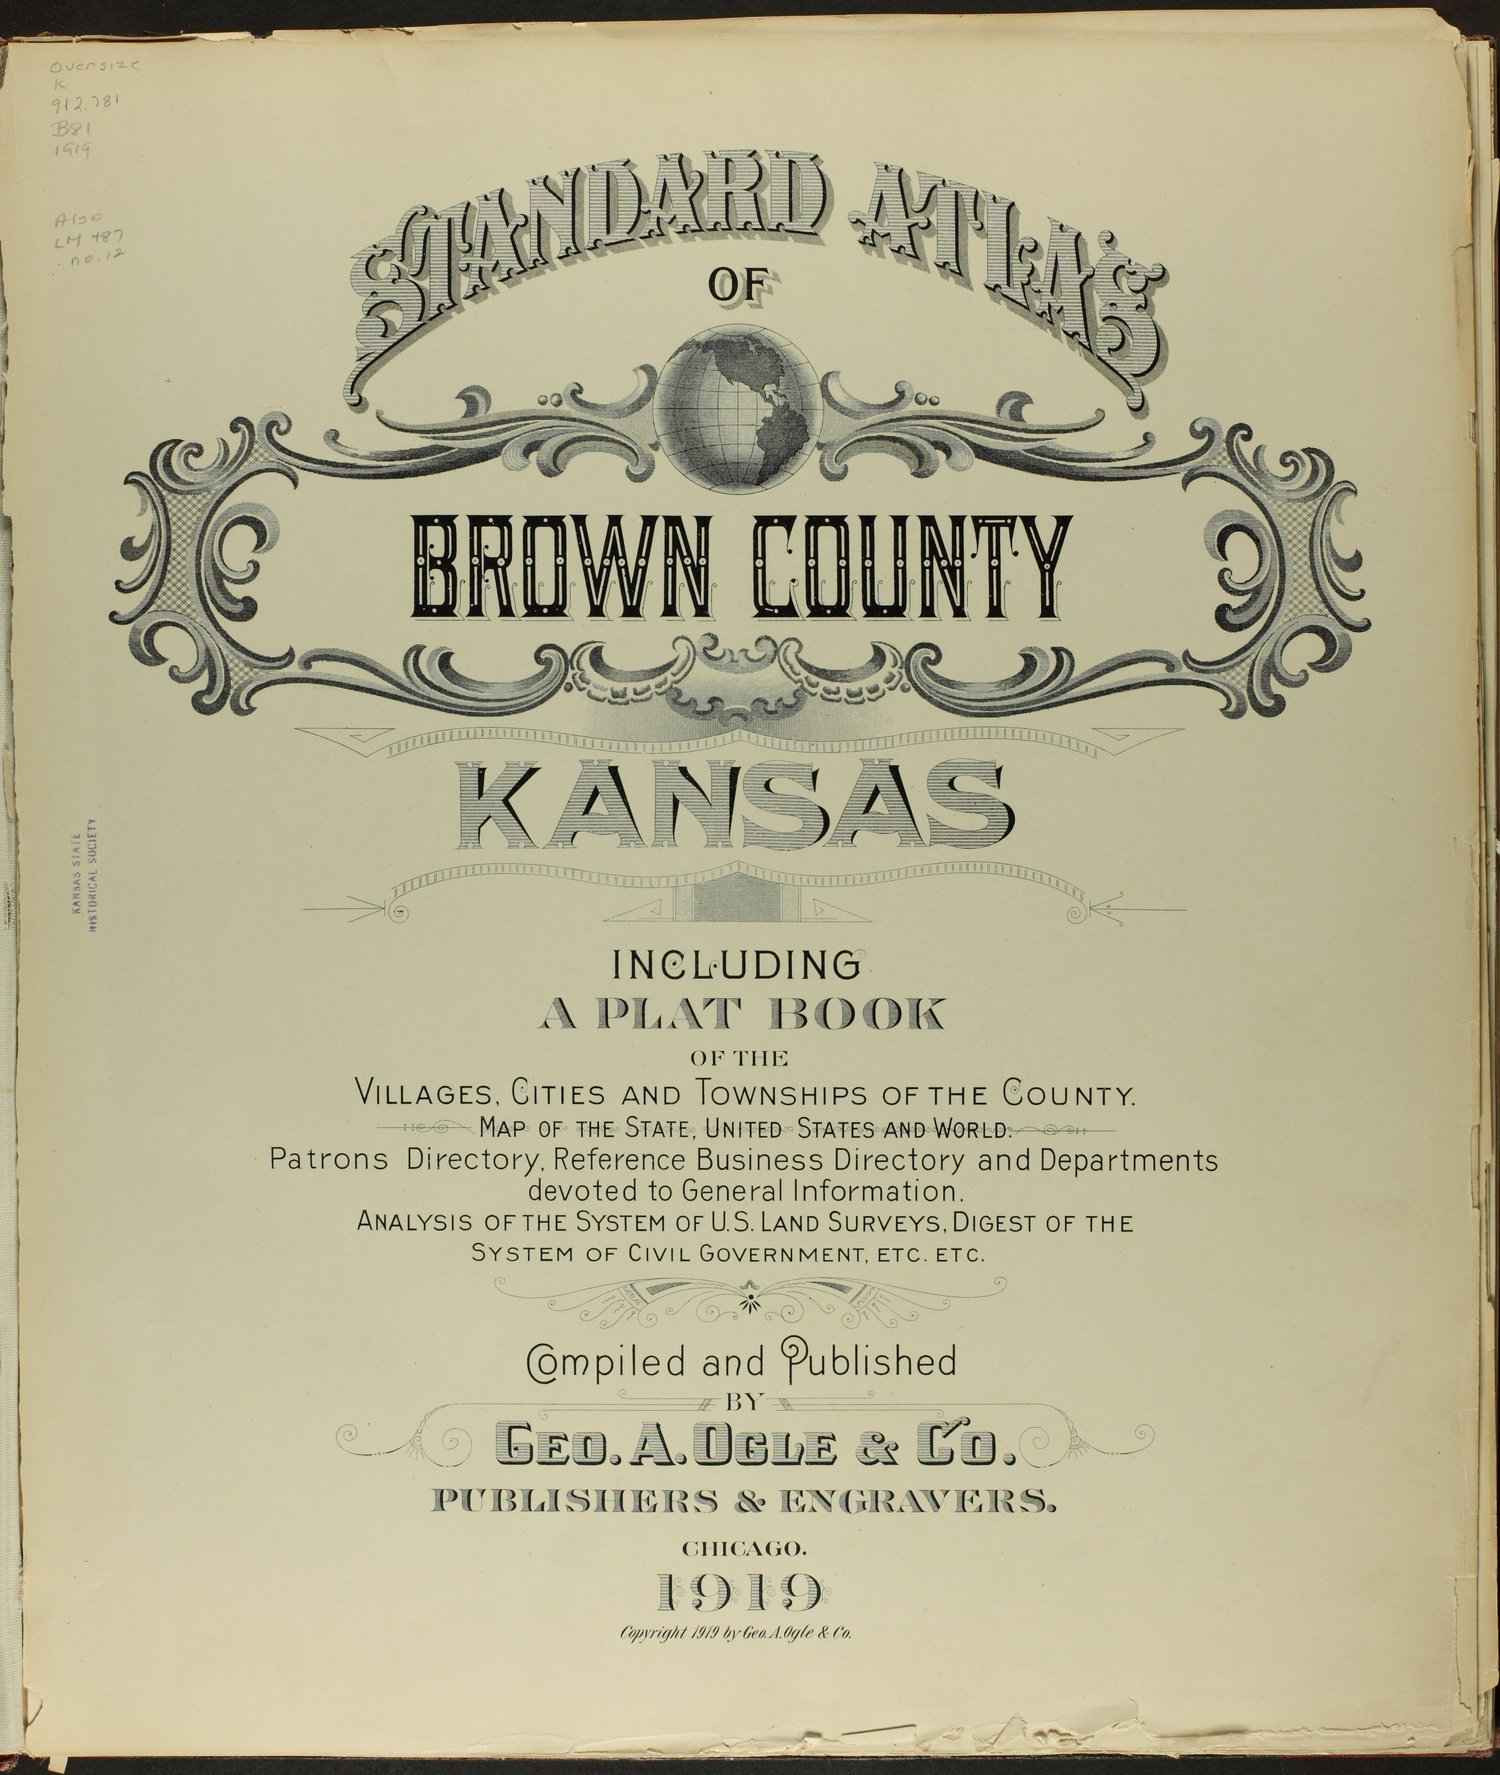 Standard atlas of Brown County, Kansas - Title Page